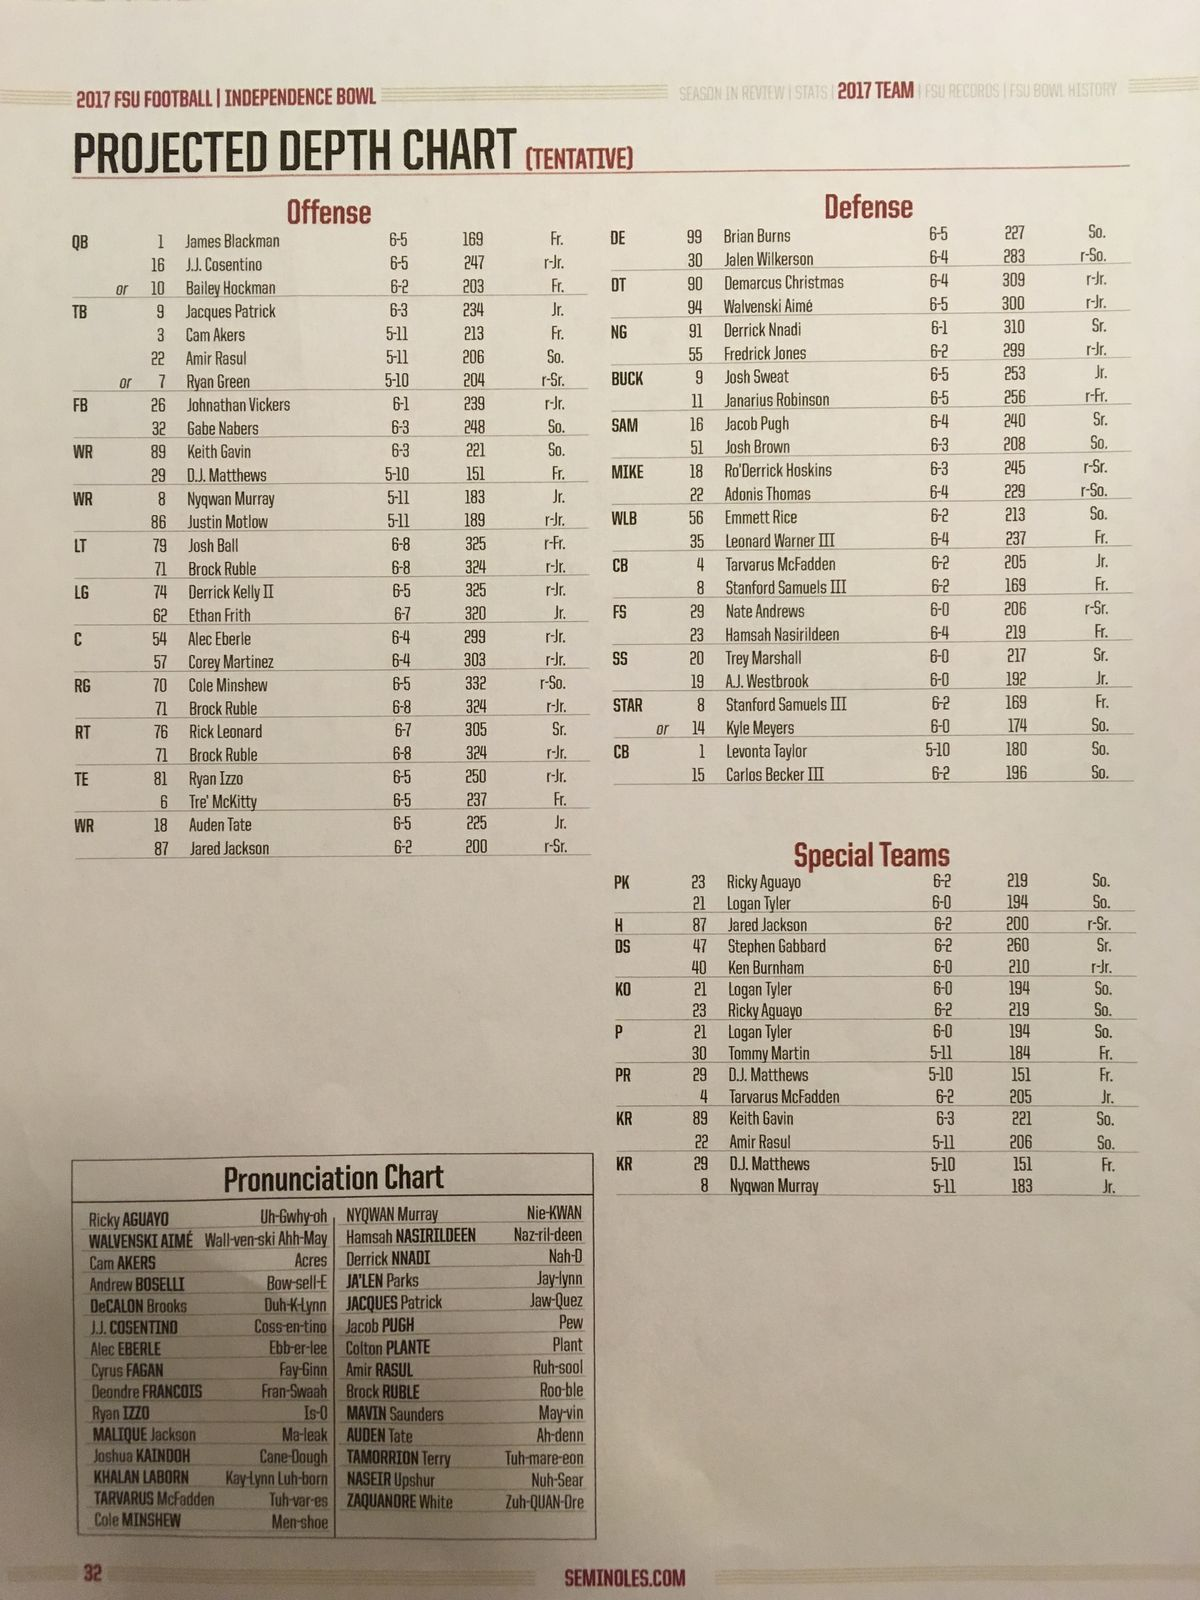 I Ve Included A Pic Of The Latest Depth Chart Below